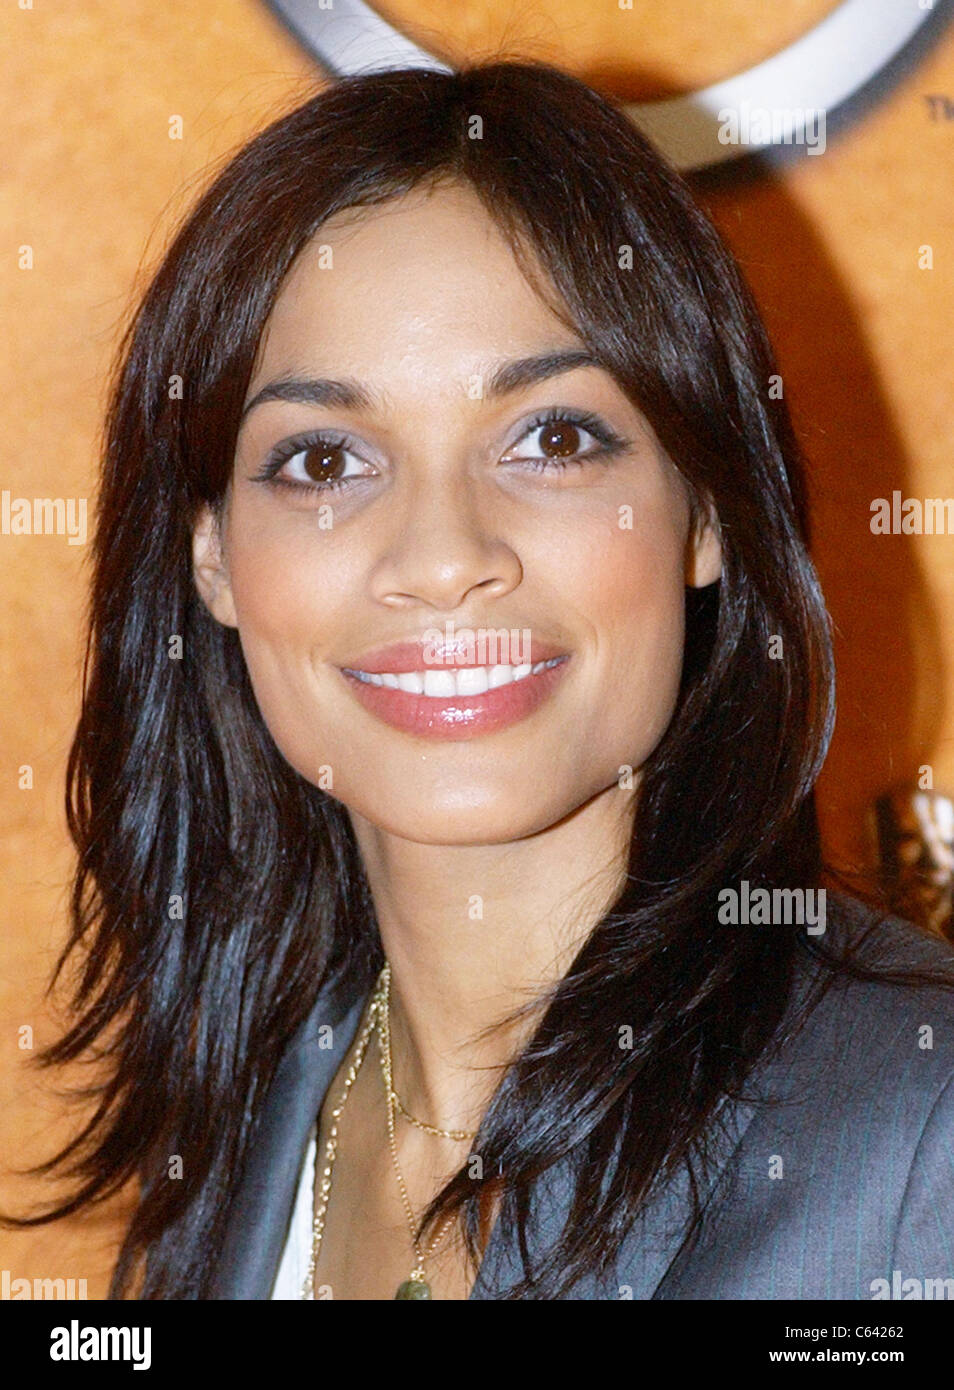 Rosario Dawson at Screen Actors Guild Awards Nomination Announcement, Los Angeles, CA January 11, 2005. Photo by: - Stock Image